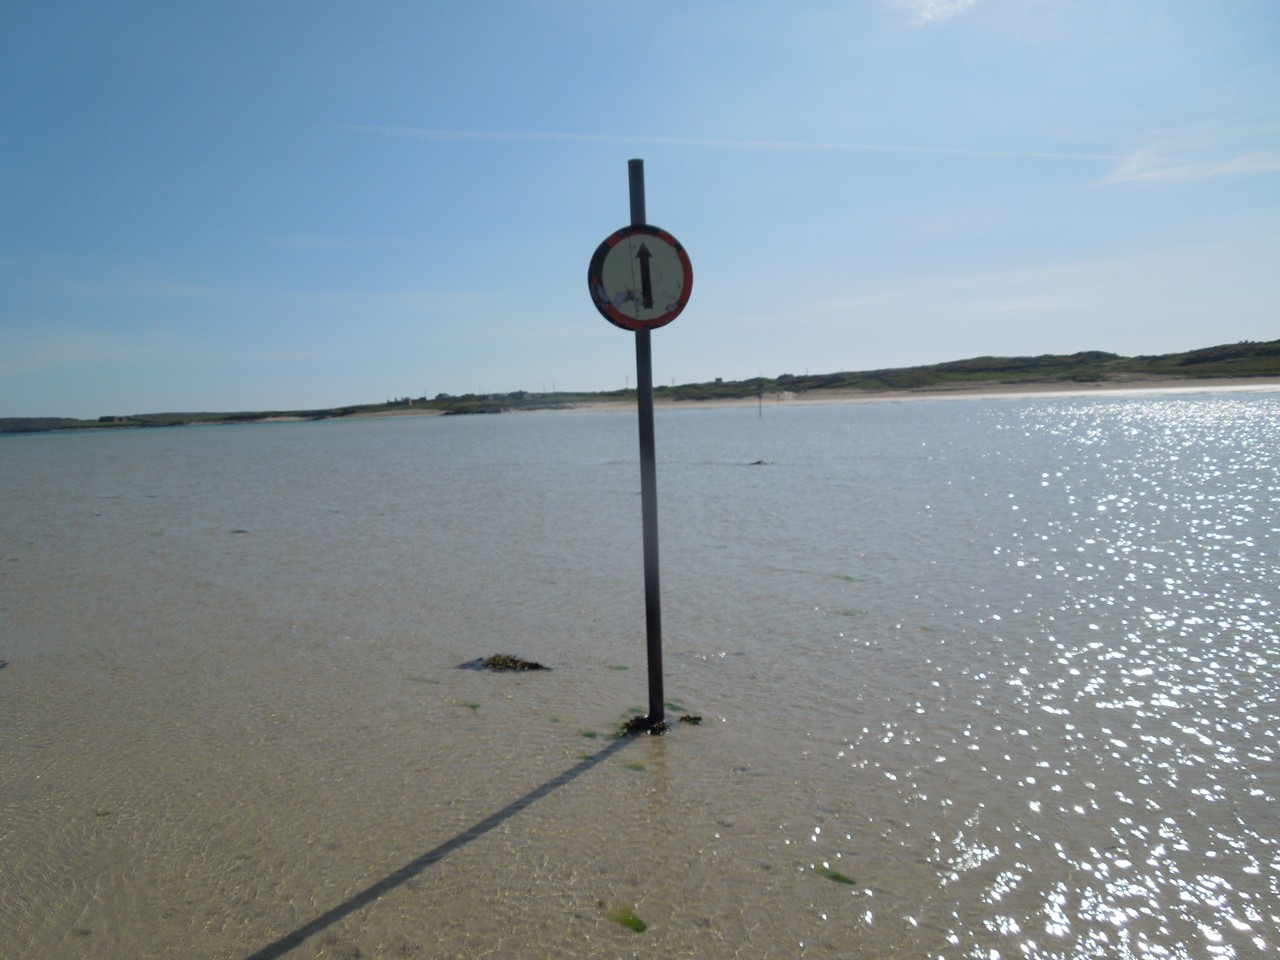 The 'road' to and from the island is clear at low tide.